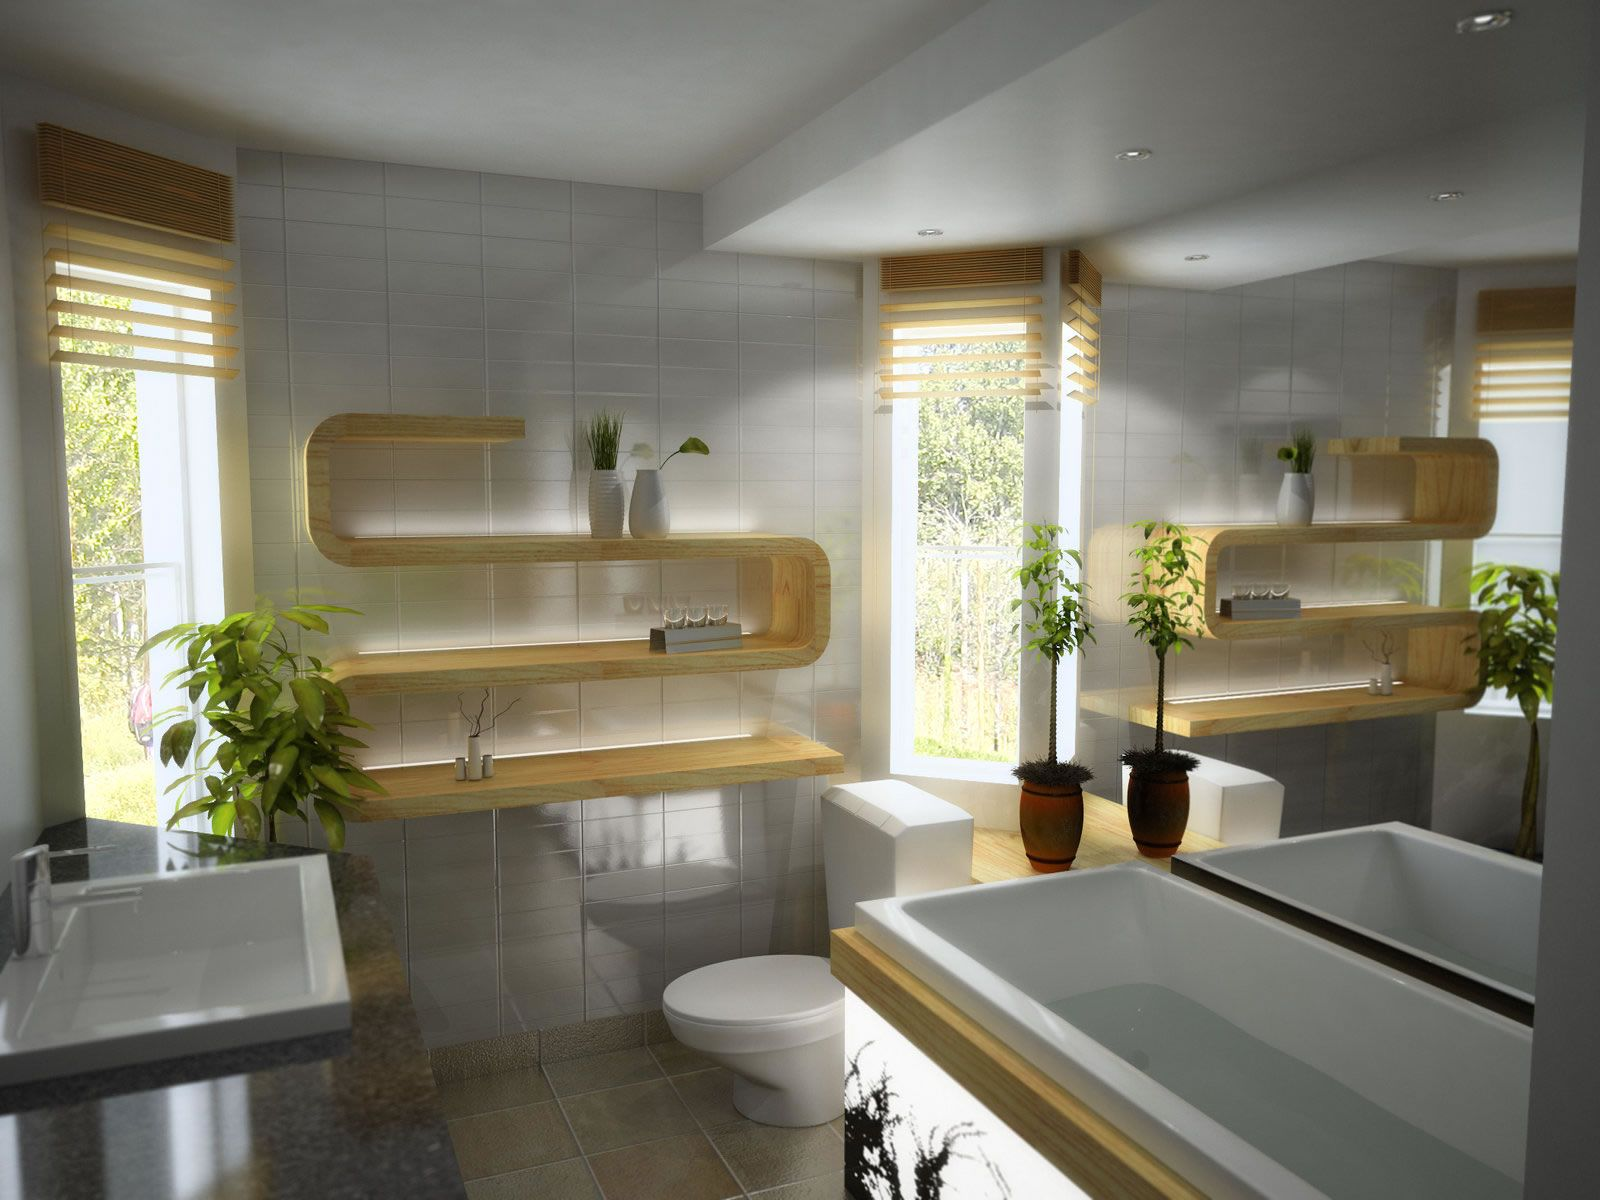 Marvelous 17 Best Images About Modern Bathroom Designs On Pinterest Largest Home Design Picture Inspirations Pitcheantrous